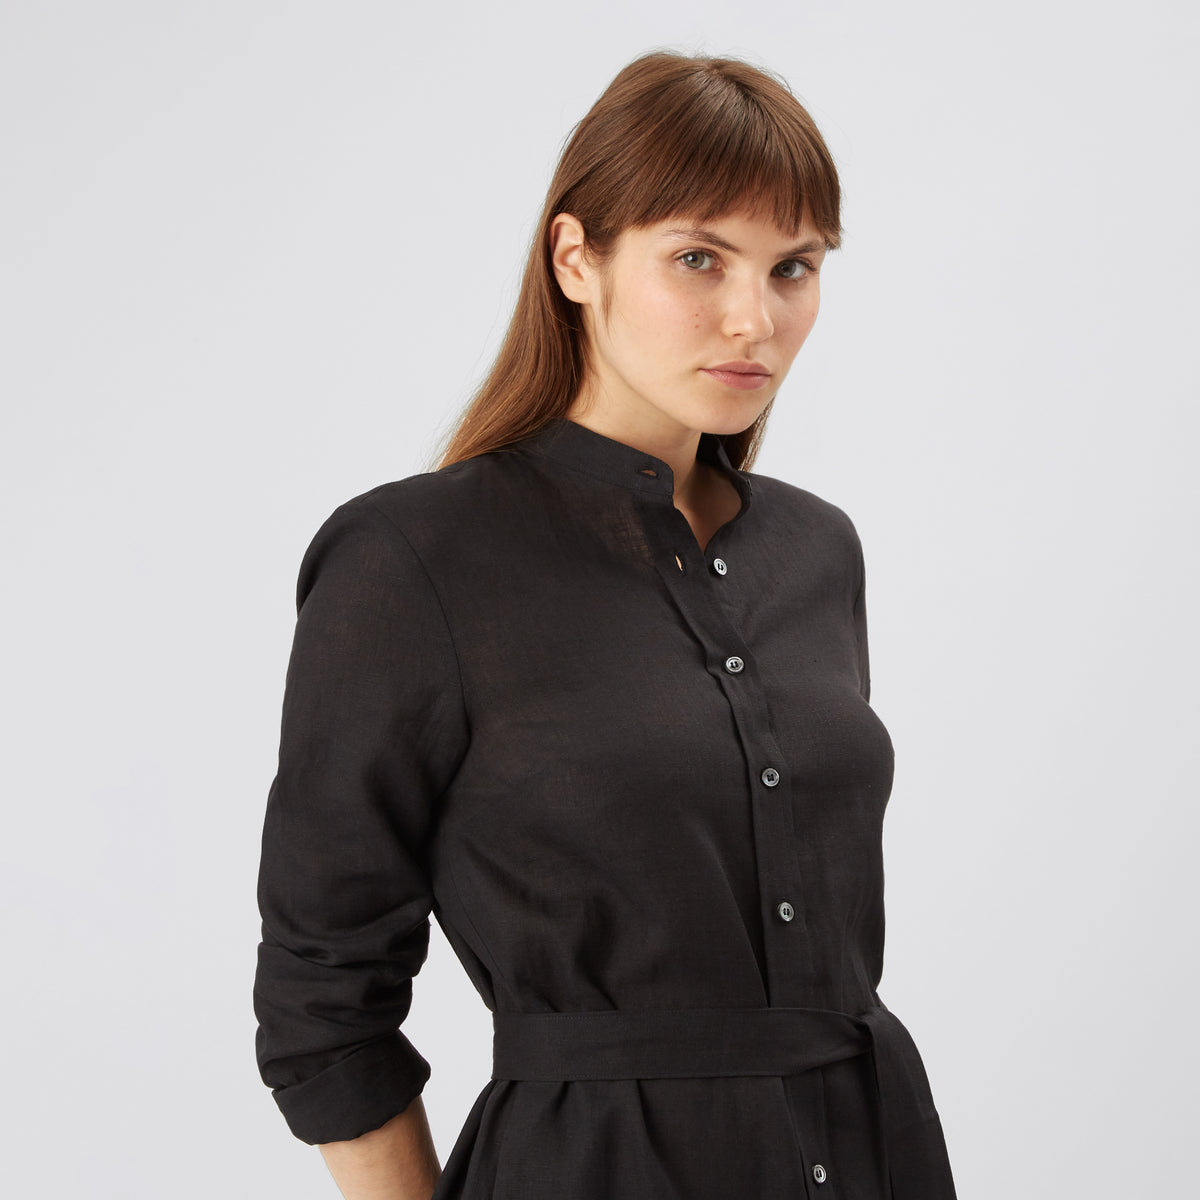 Women's Collarless Shirt Dress Black Linen - Community Clothing